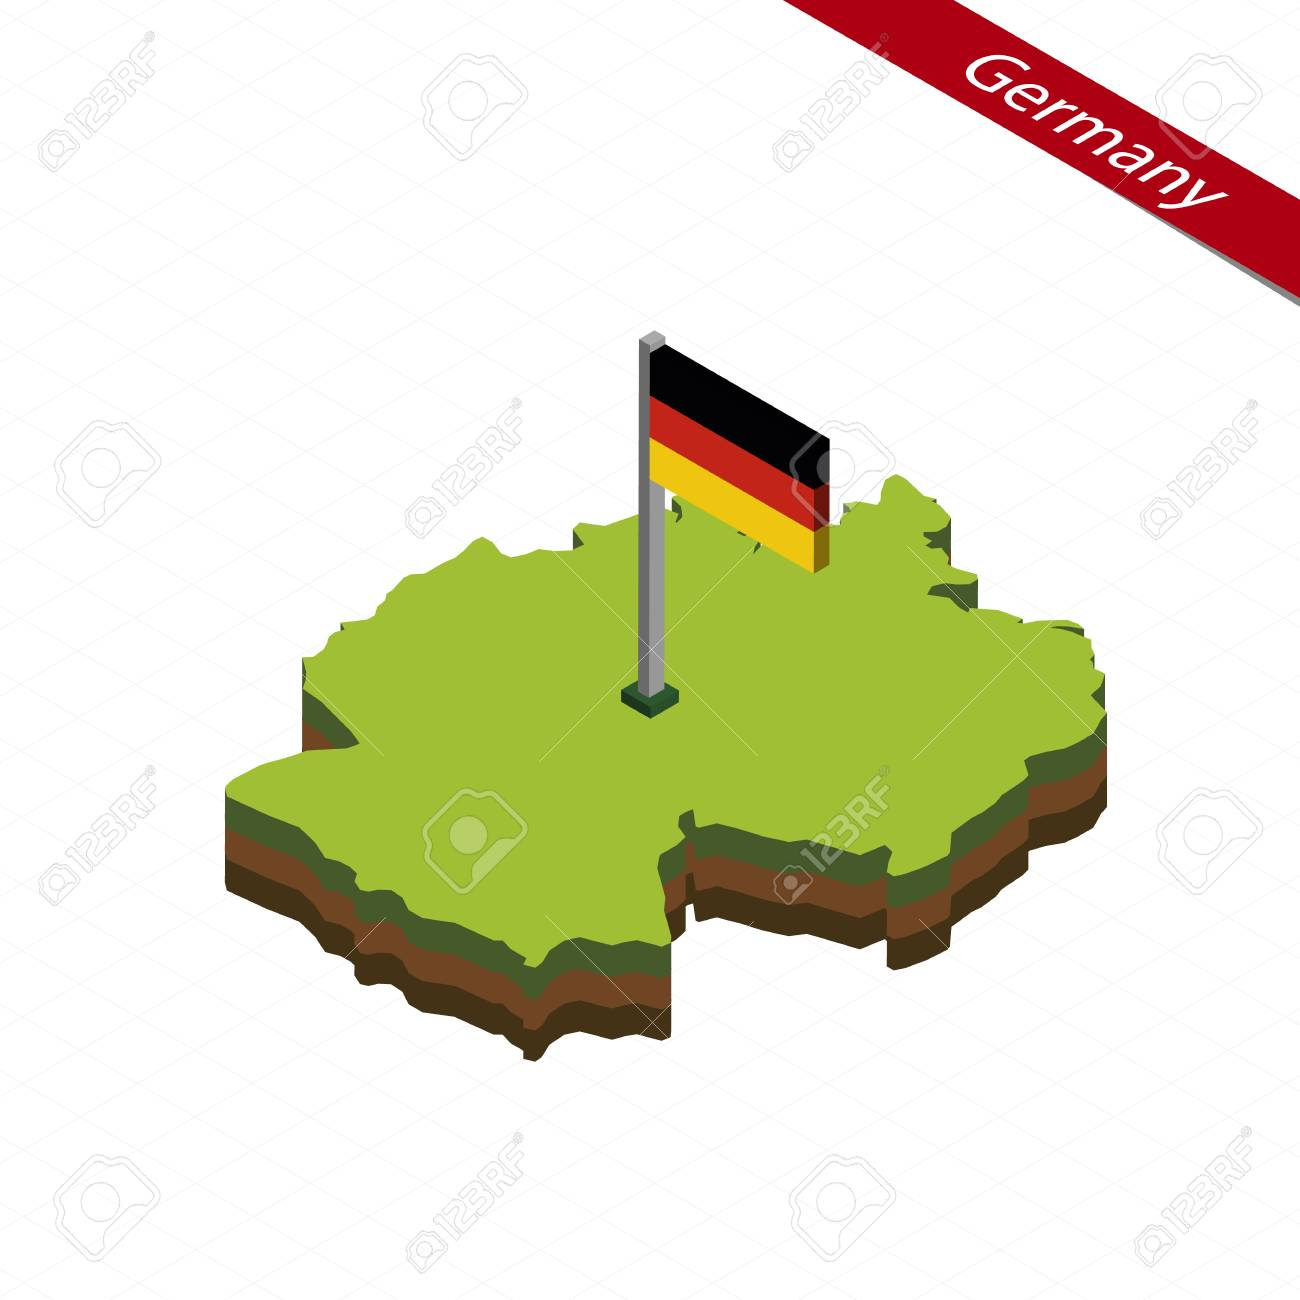 Map Of Germany 3d.Isometric Map And Flag Of Germany 3d Isometric Shape Of Germany